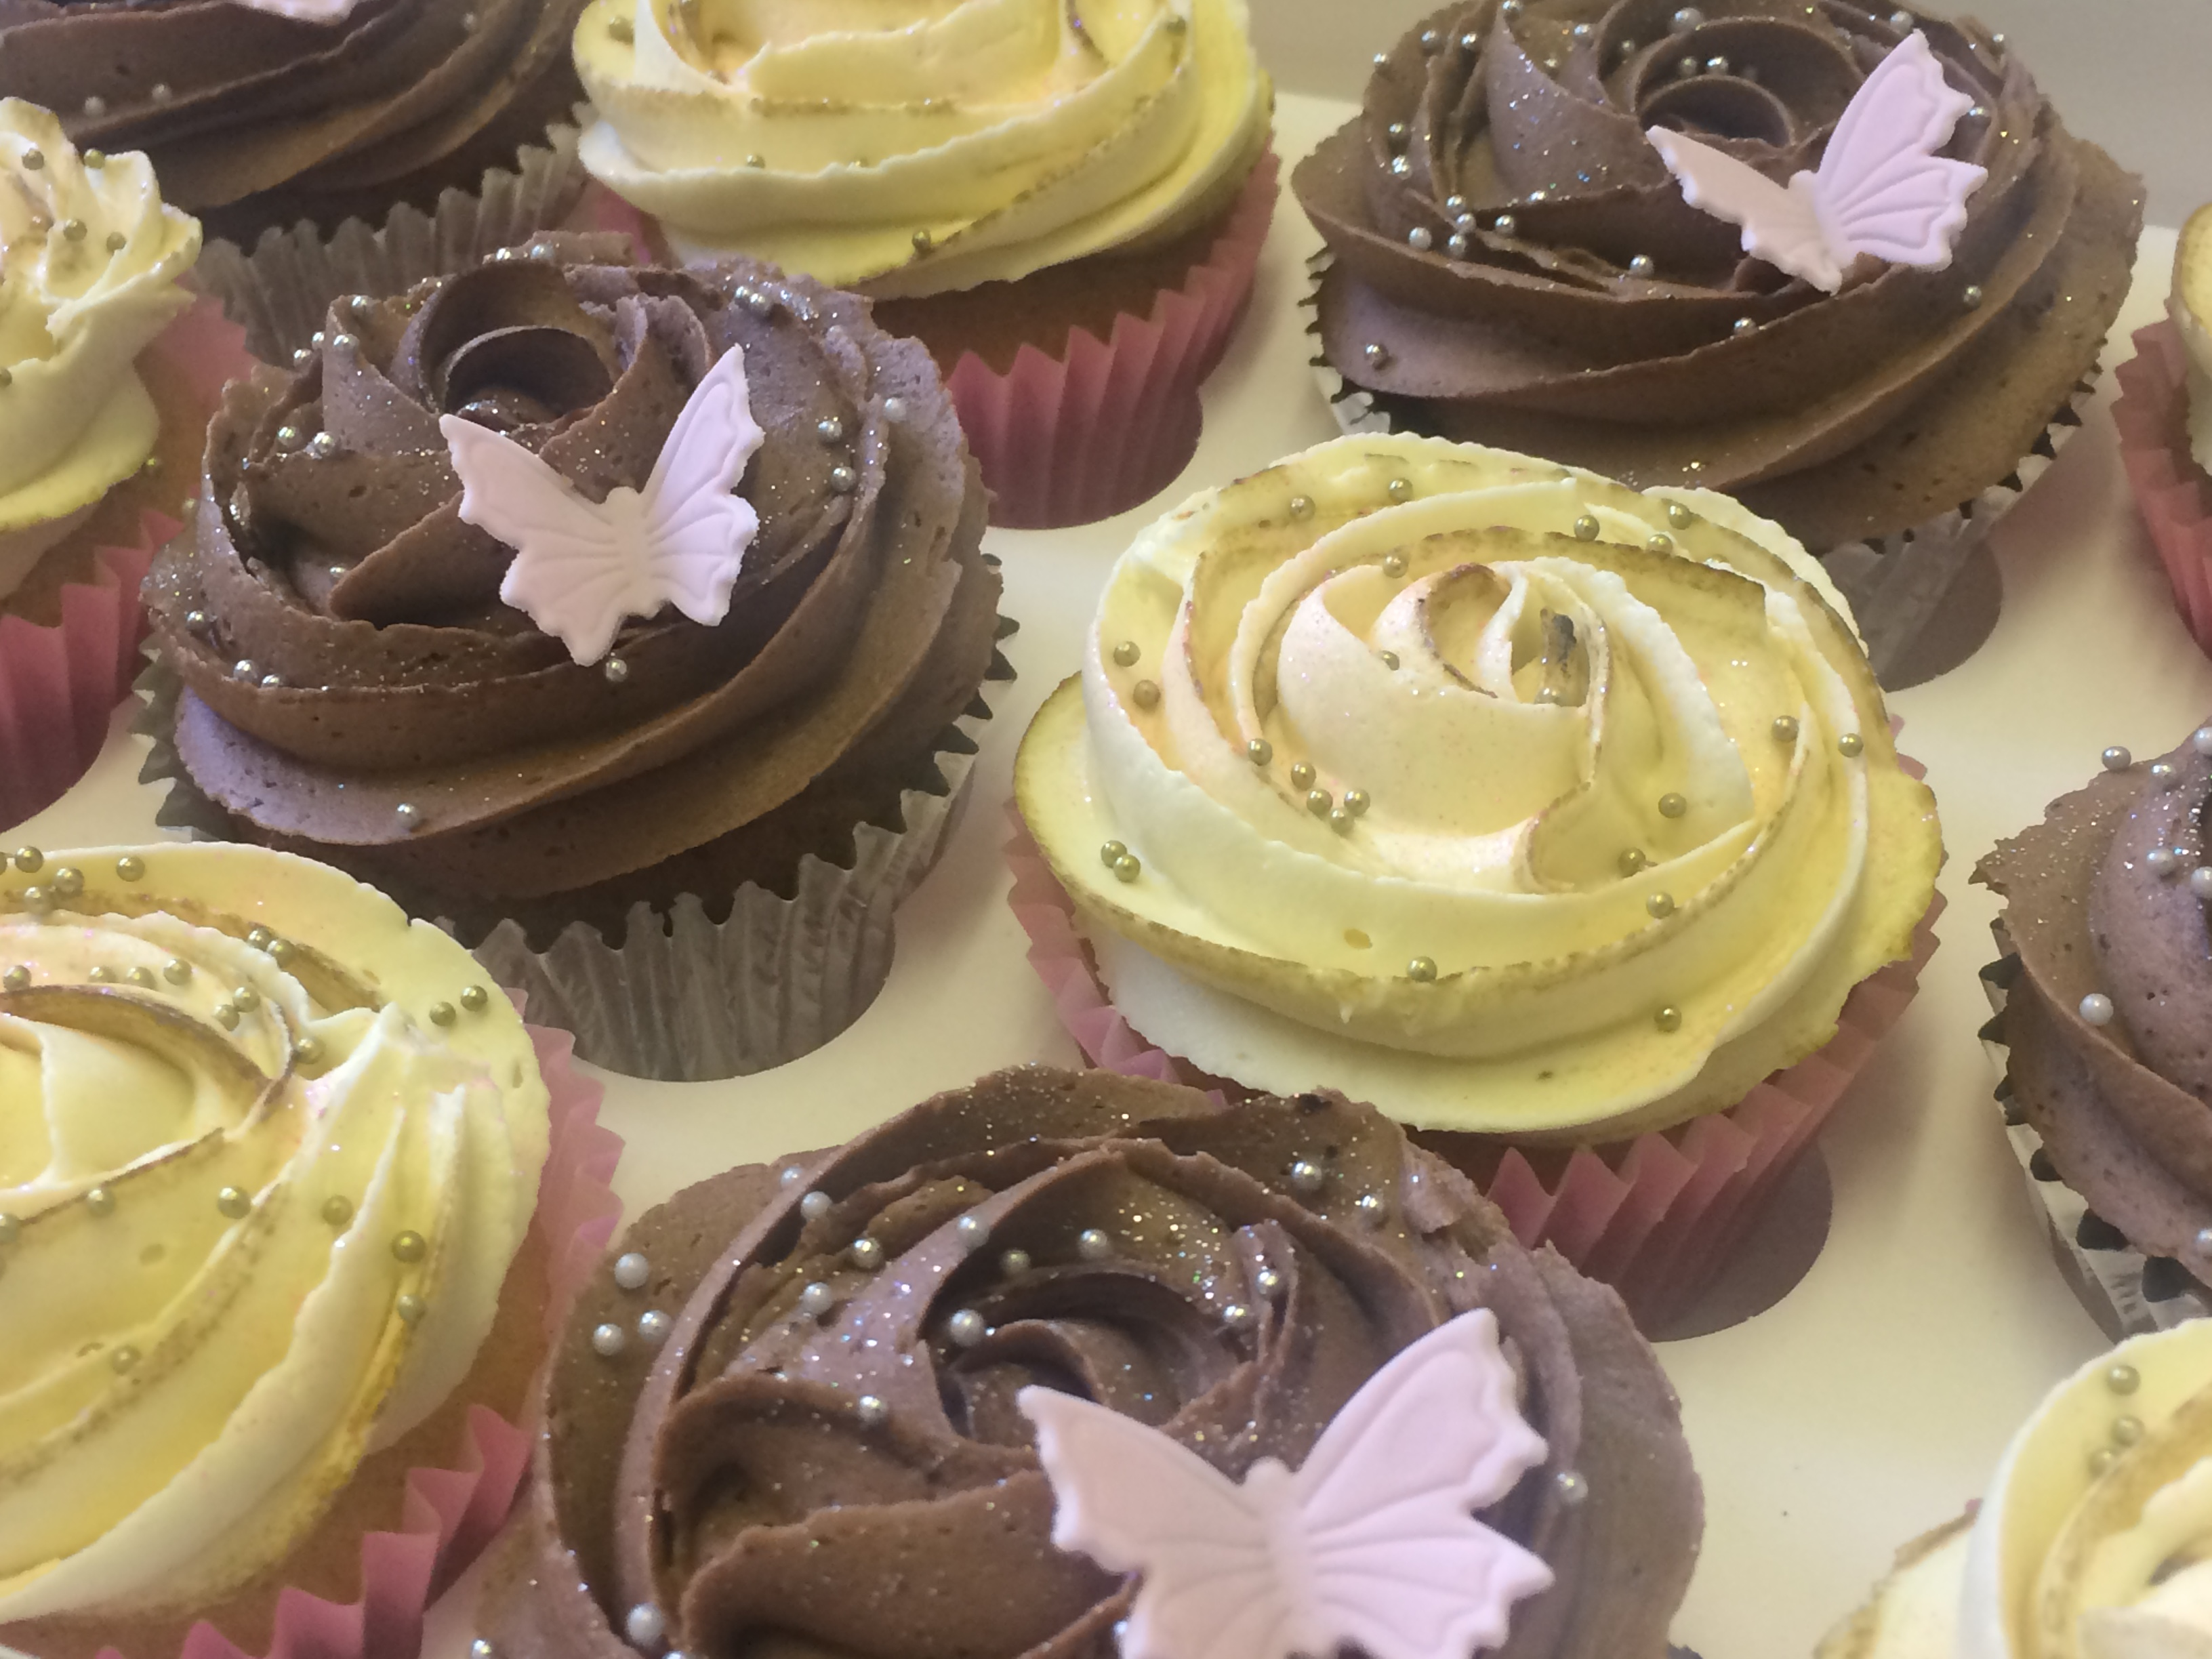 Milk and White Chocolate Butterfly Cupcakes